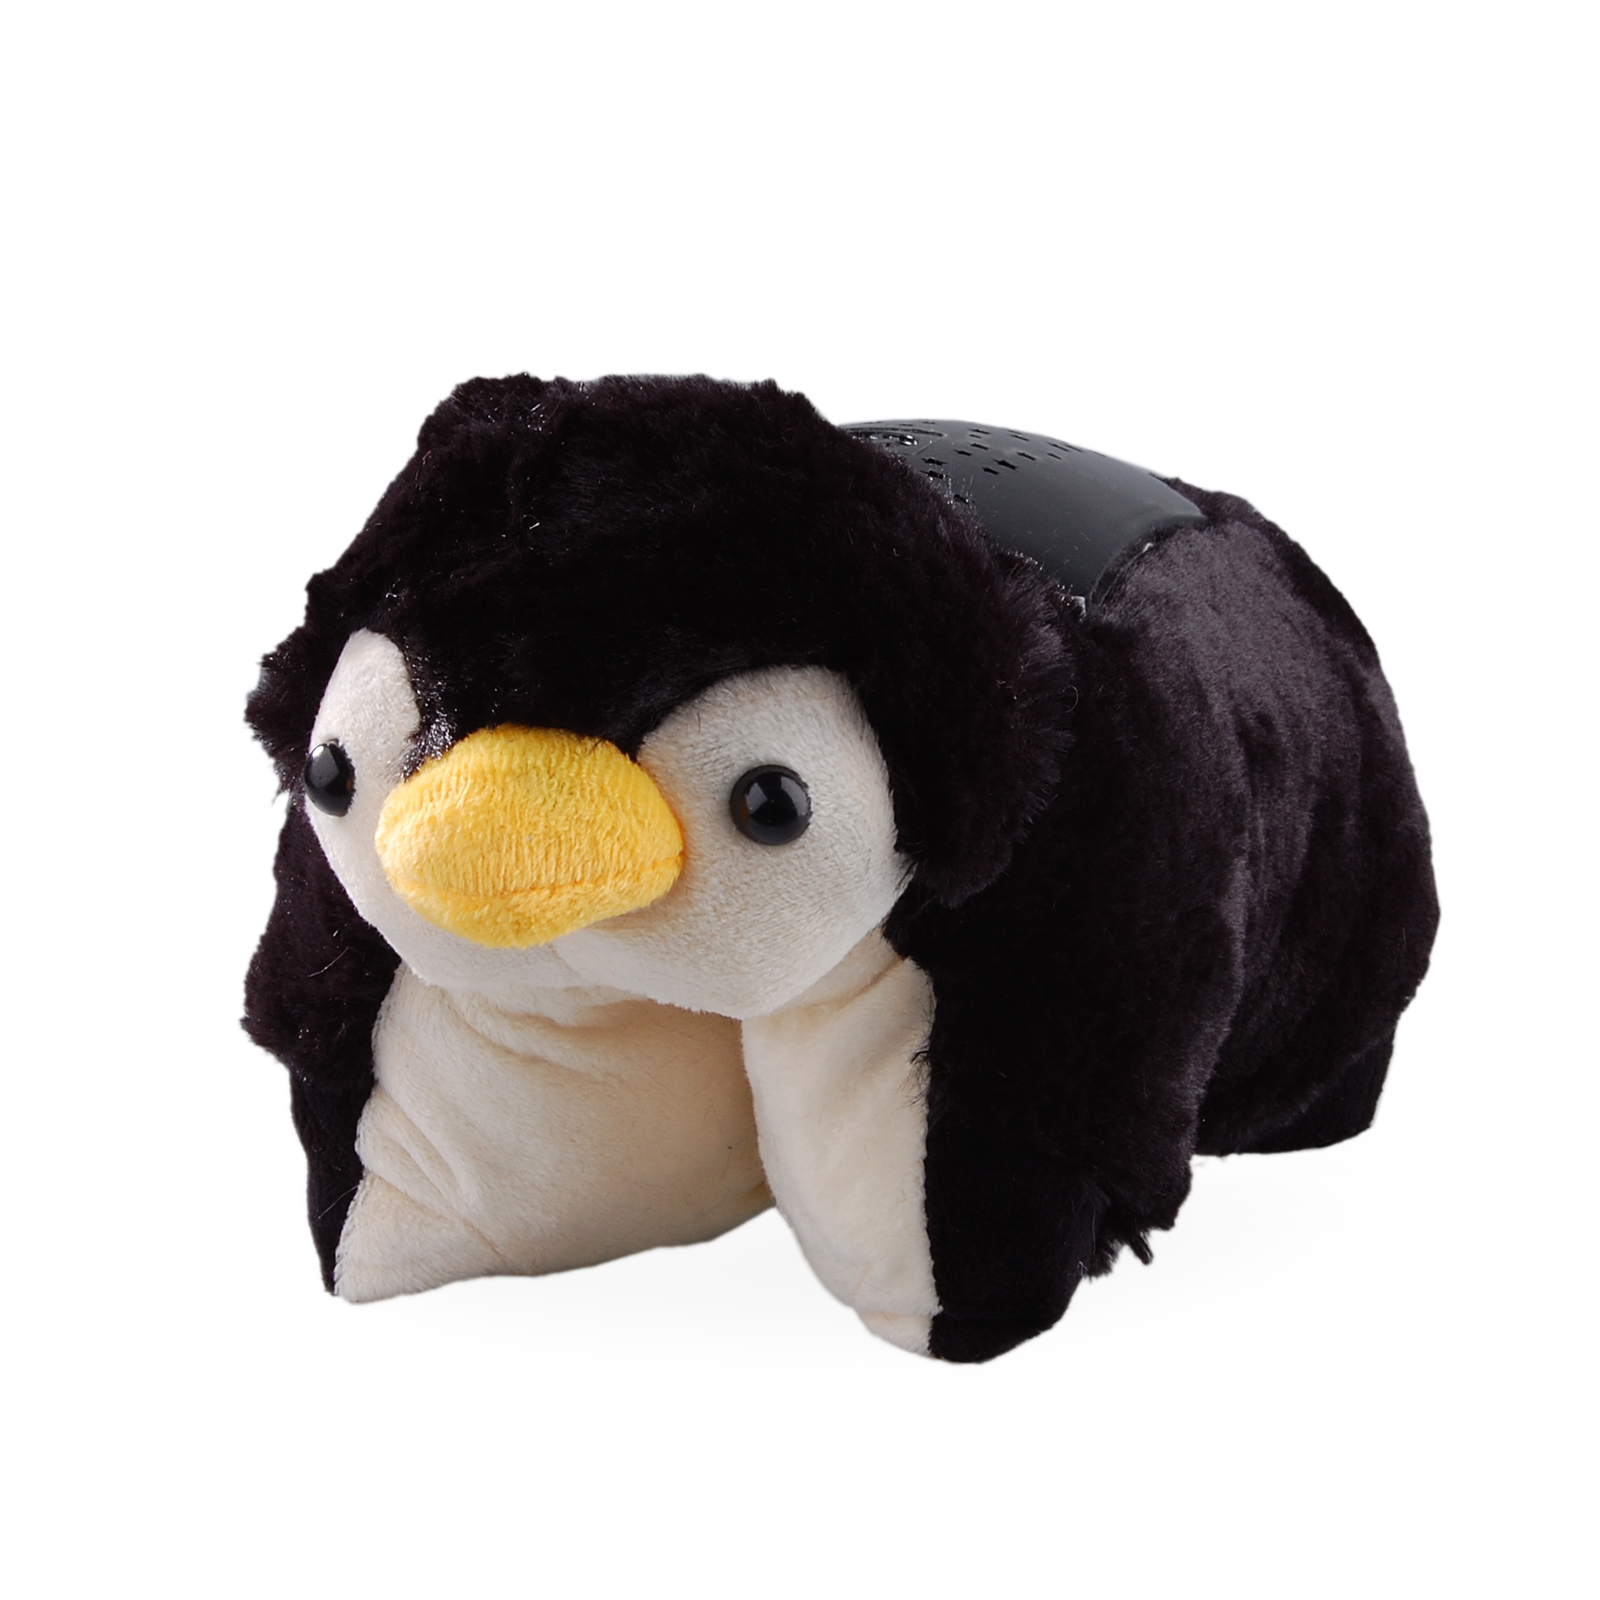 Cute Names For A Penguin Pillow Pet : Pillow Pets Dream Lites Playful Penguin 11`Pillow Pet Nightlight Baby Sleeping eBay